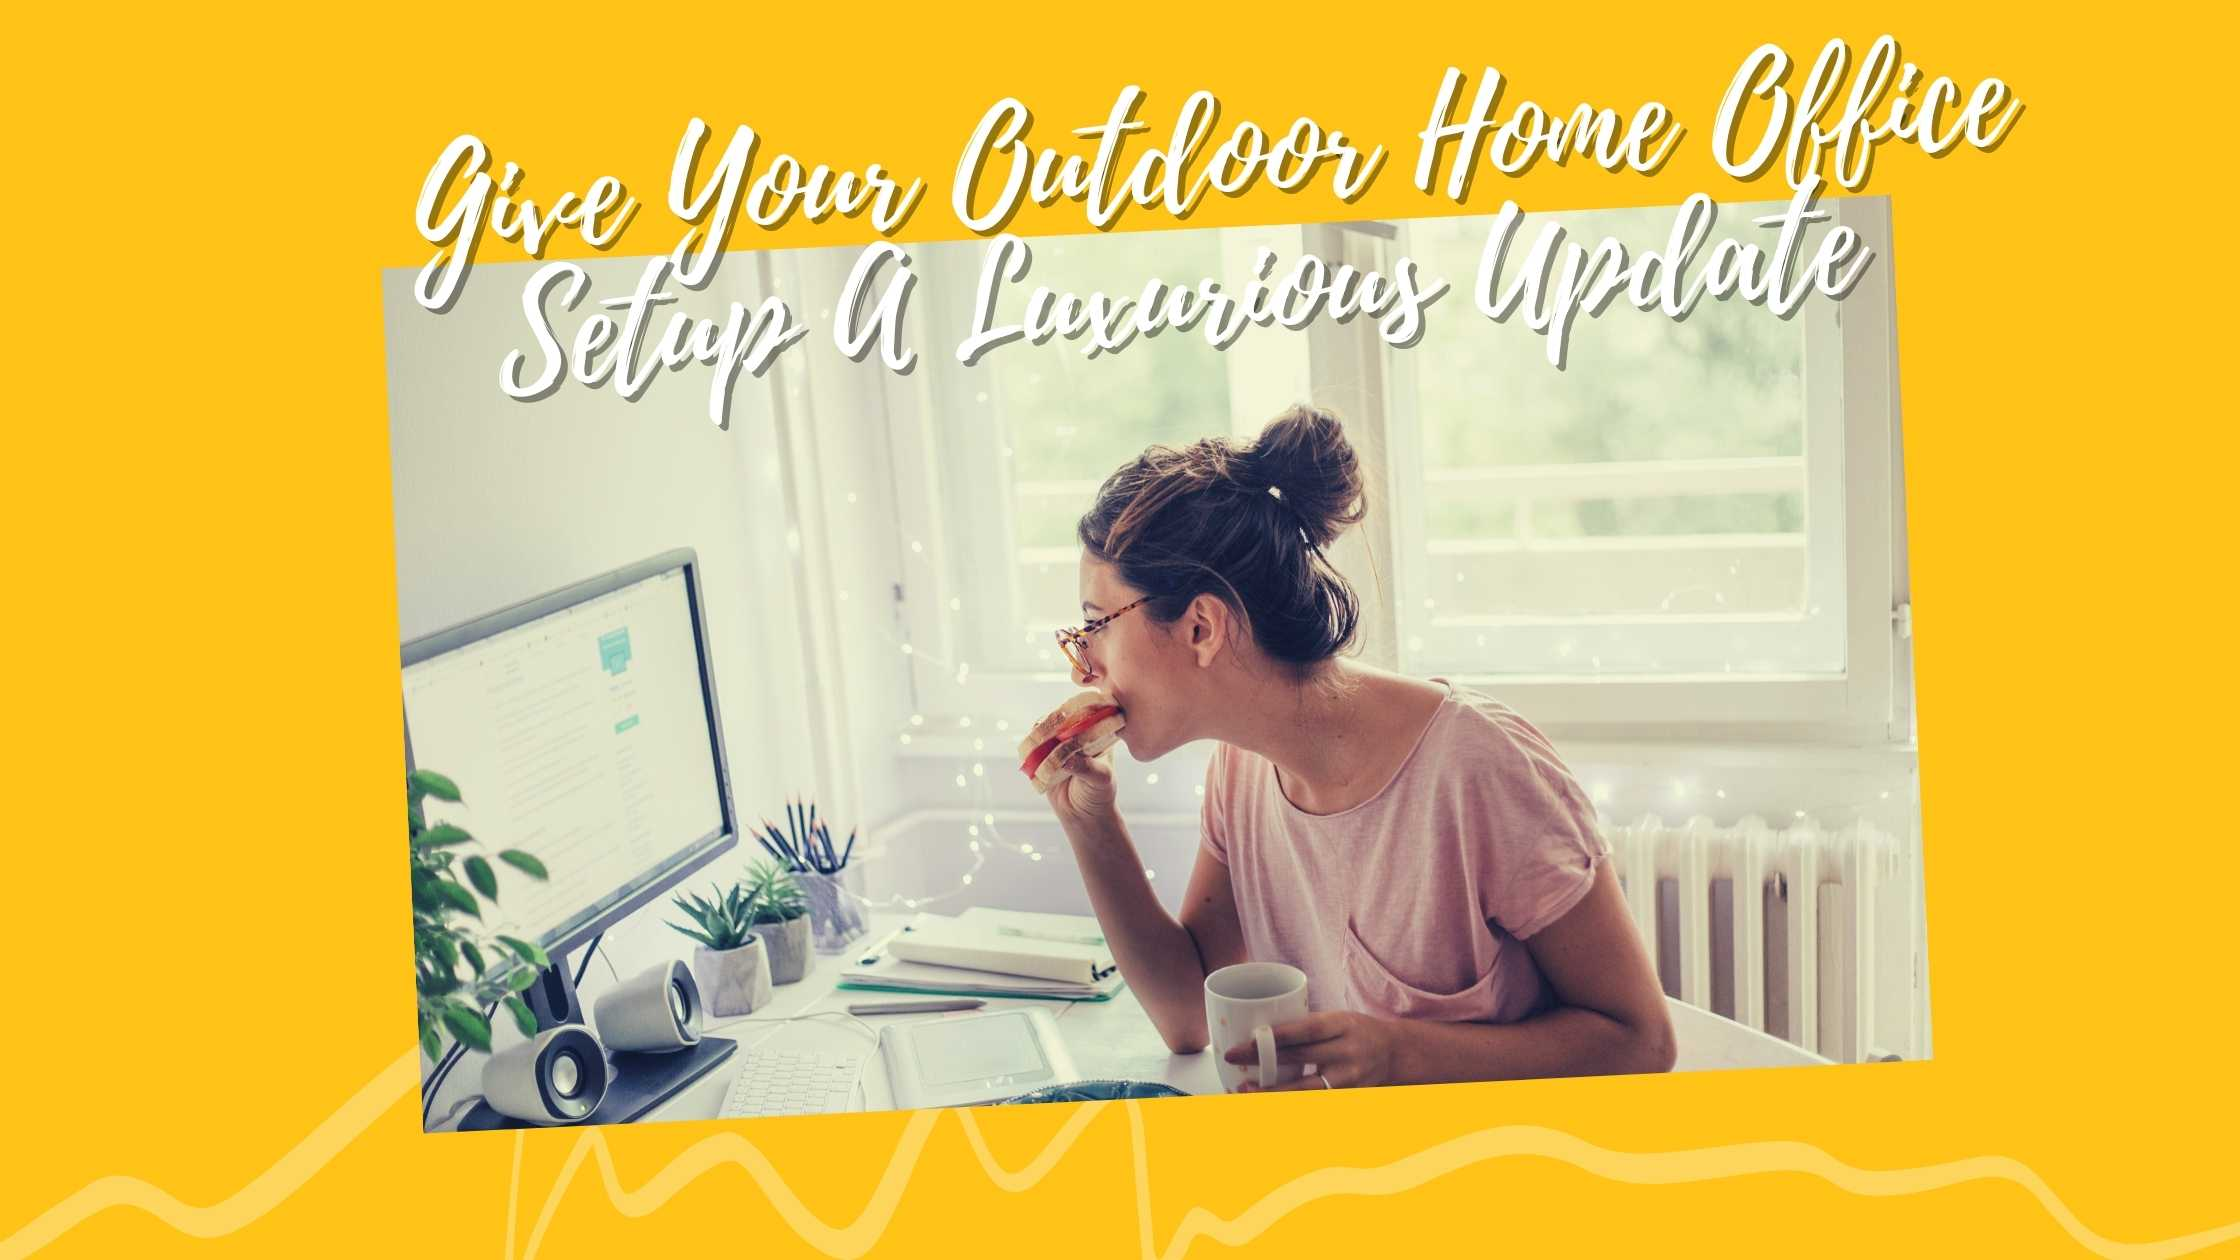 Give Your Outdoor Home Office Setup A Luxurious Update